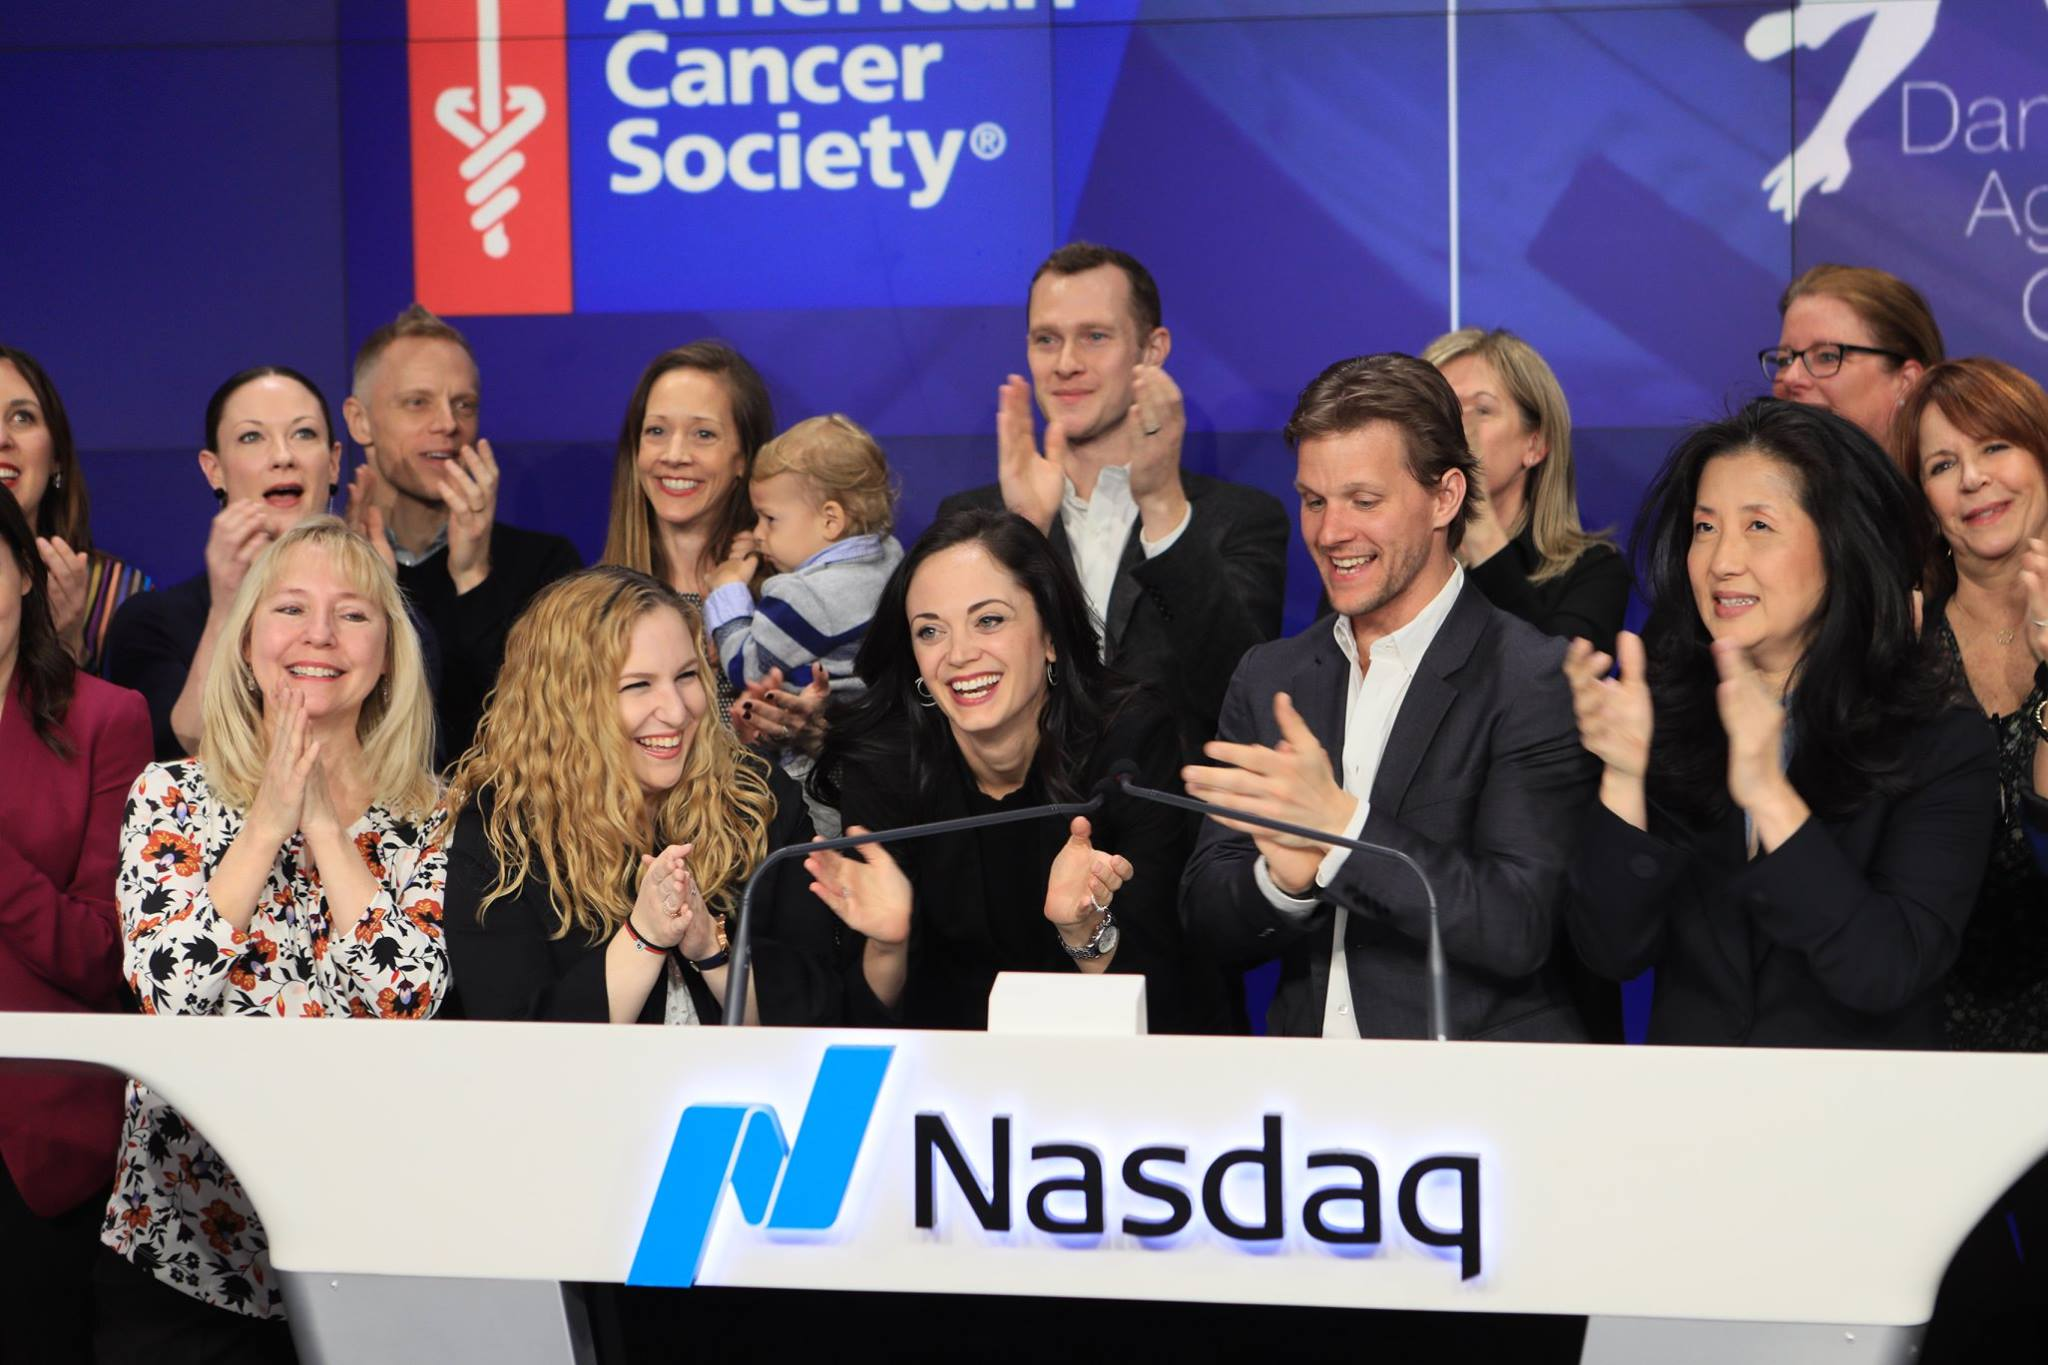 Erin Fogarty-Bittner and her Dance Against Cancer Co-Founder  ring the NASDAQ Closing Bell on March 22, 2018